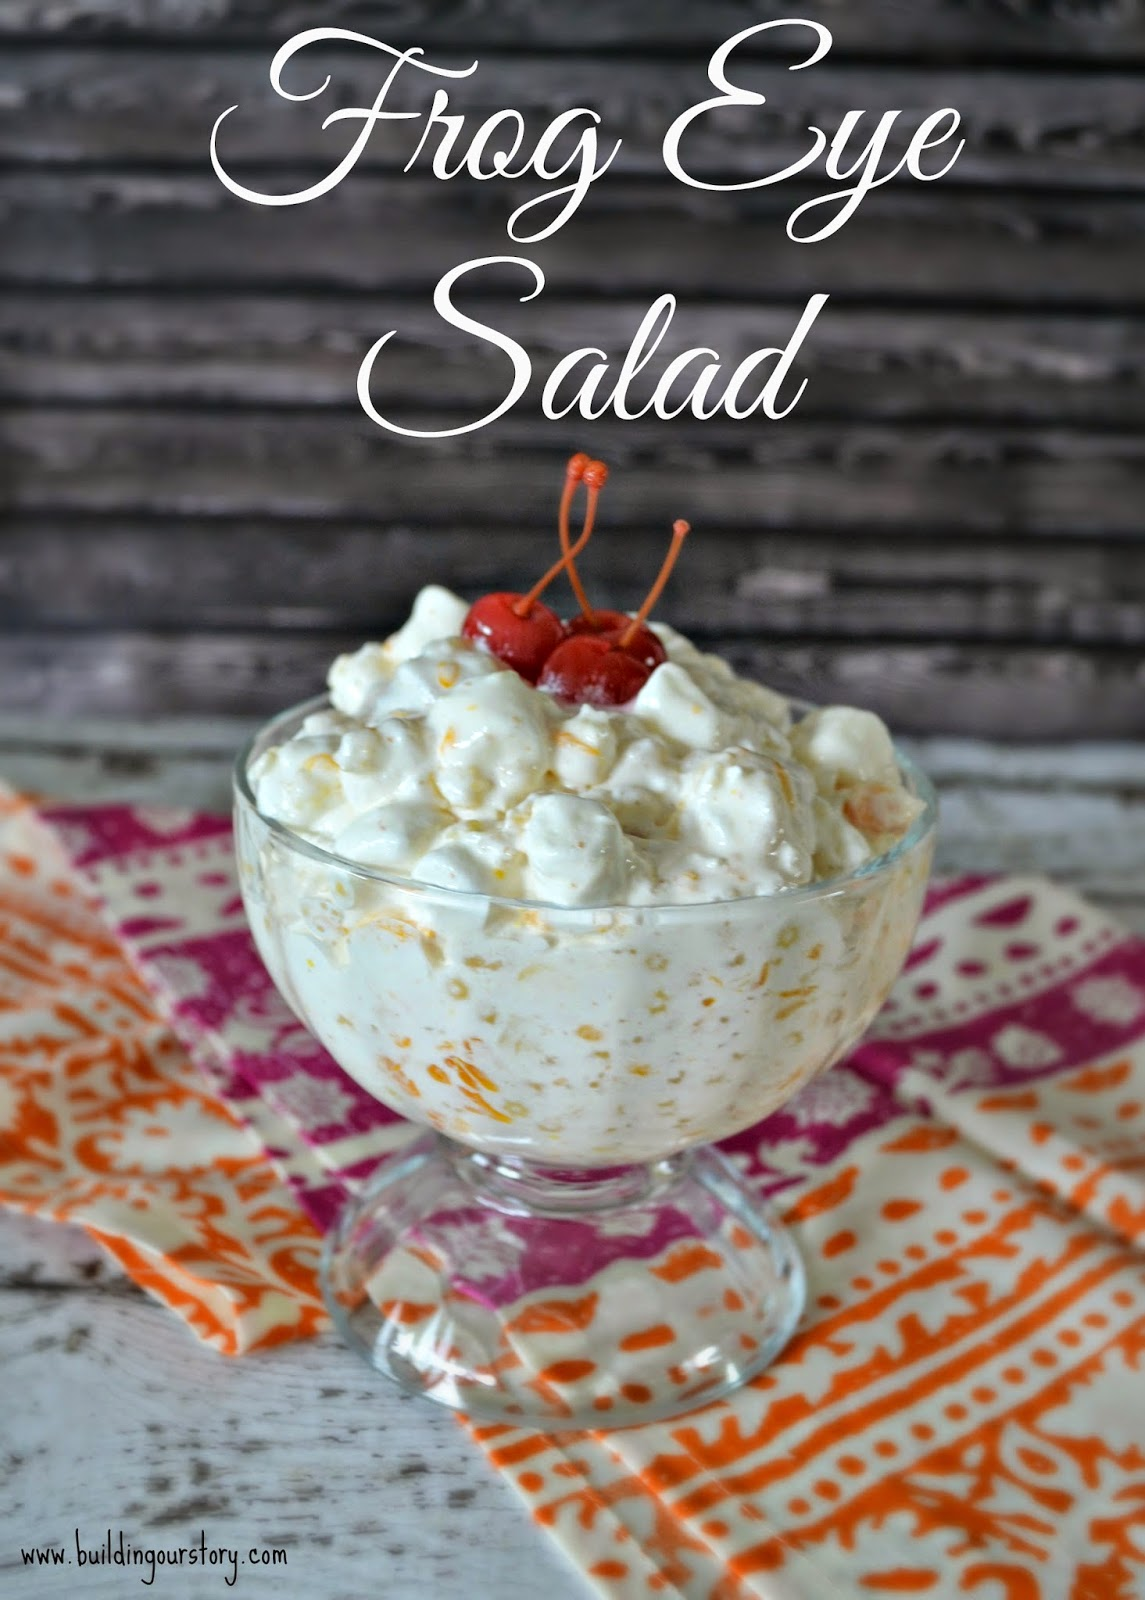 Fast And Easy Dinner Recipes: Frog Eye Salad #Recipe: Kids Desserts #AddCoolWhip